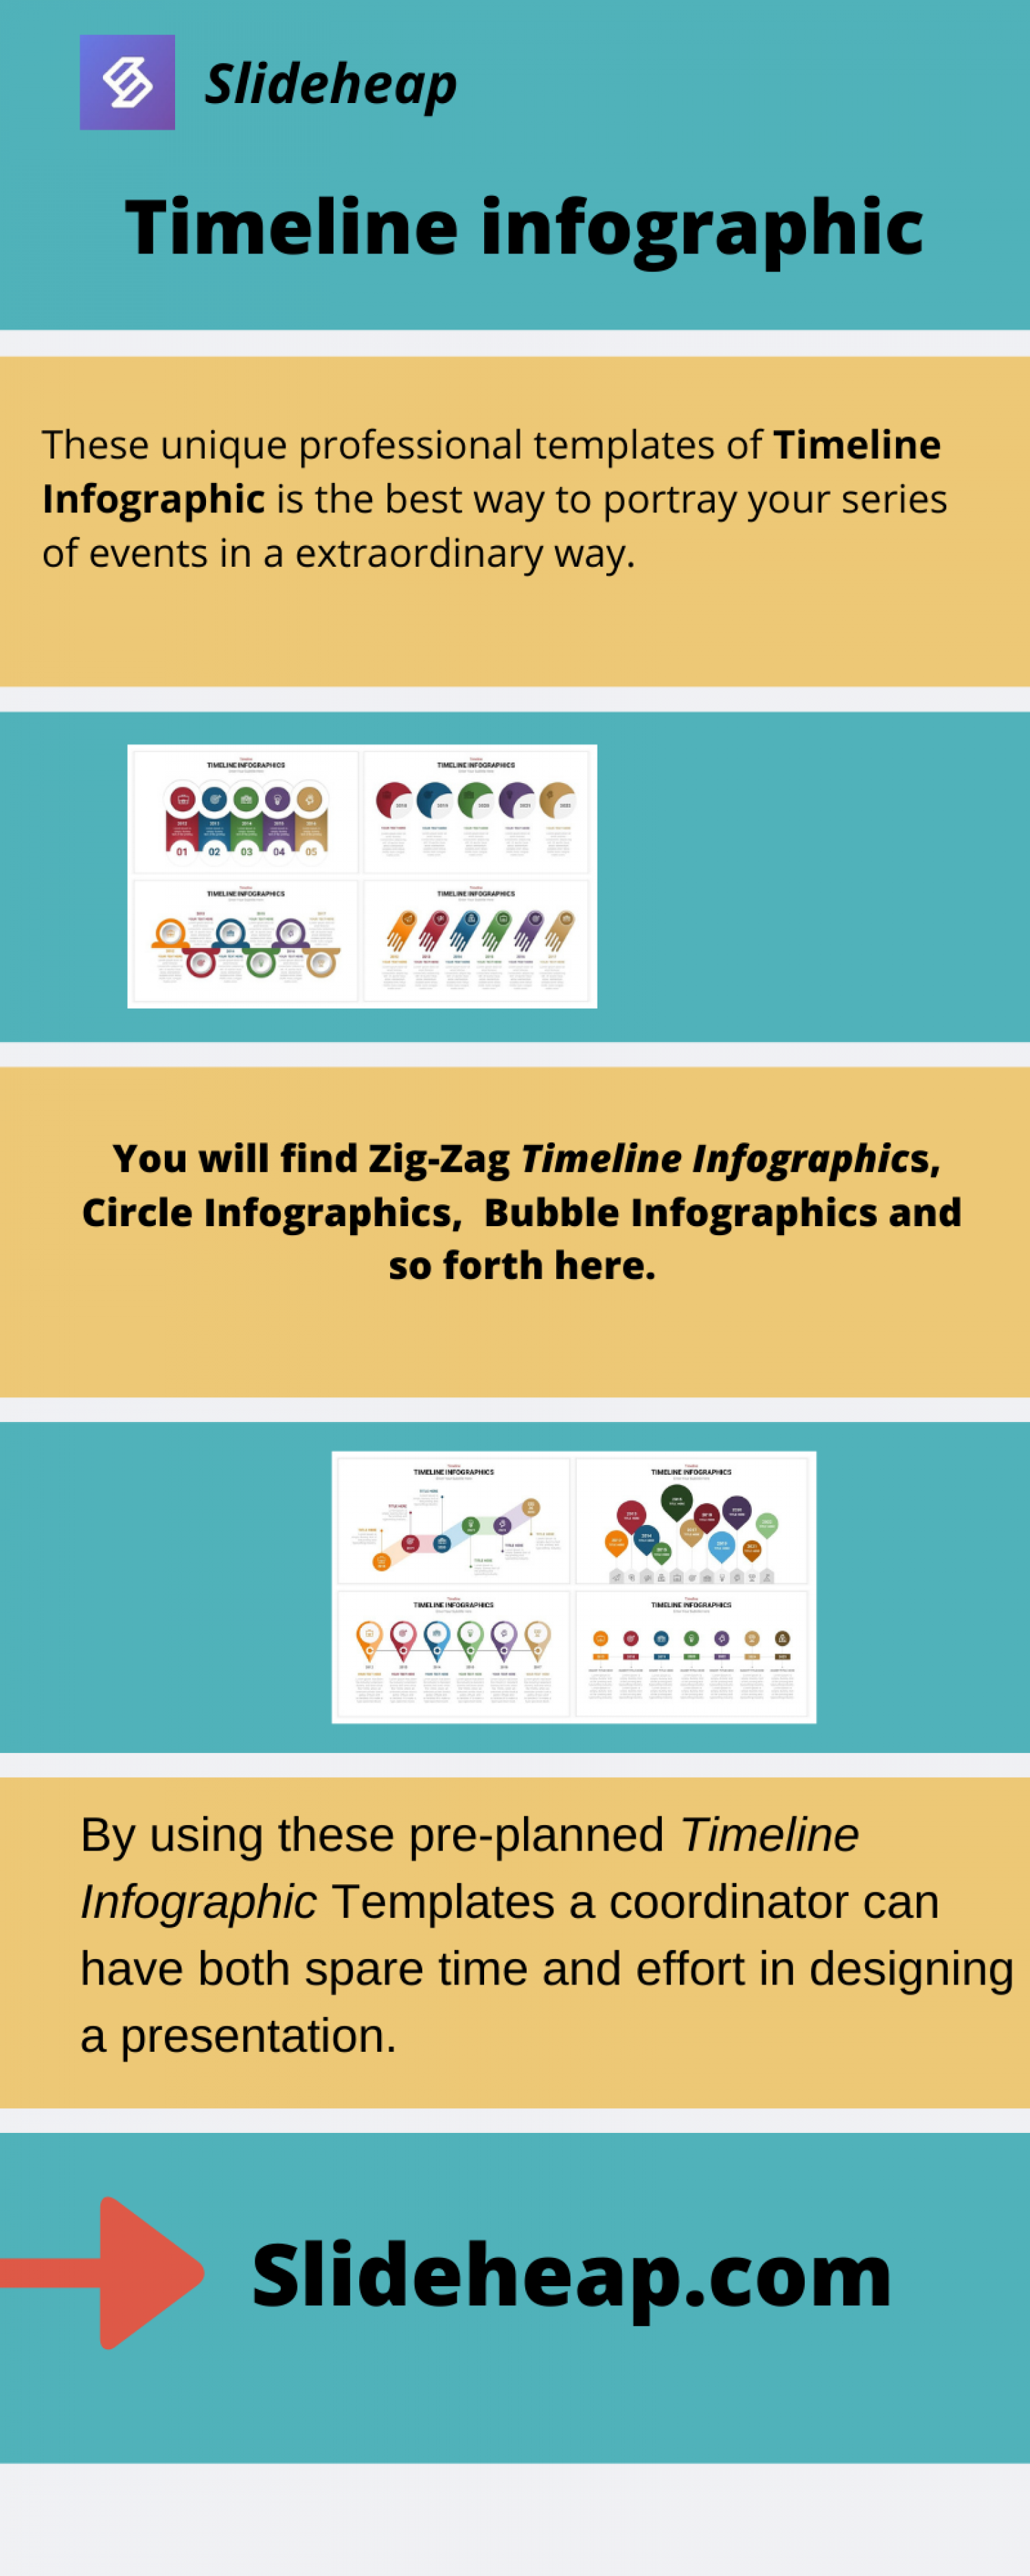 Timeline infographic | Slideheap Infographic